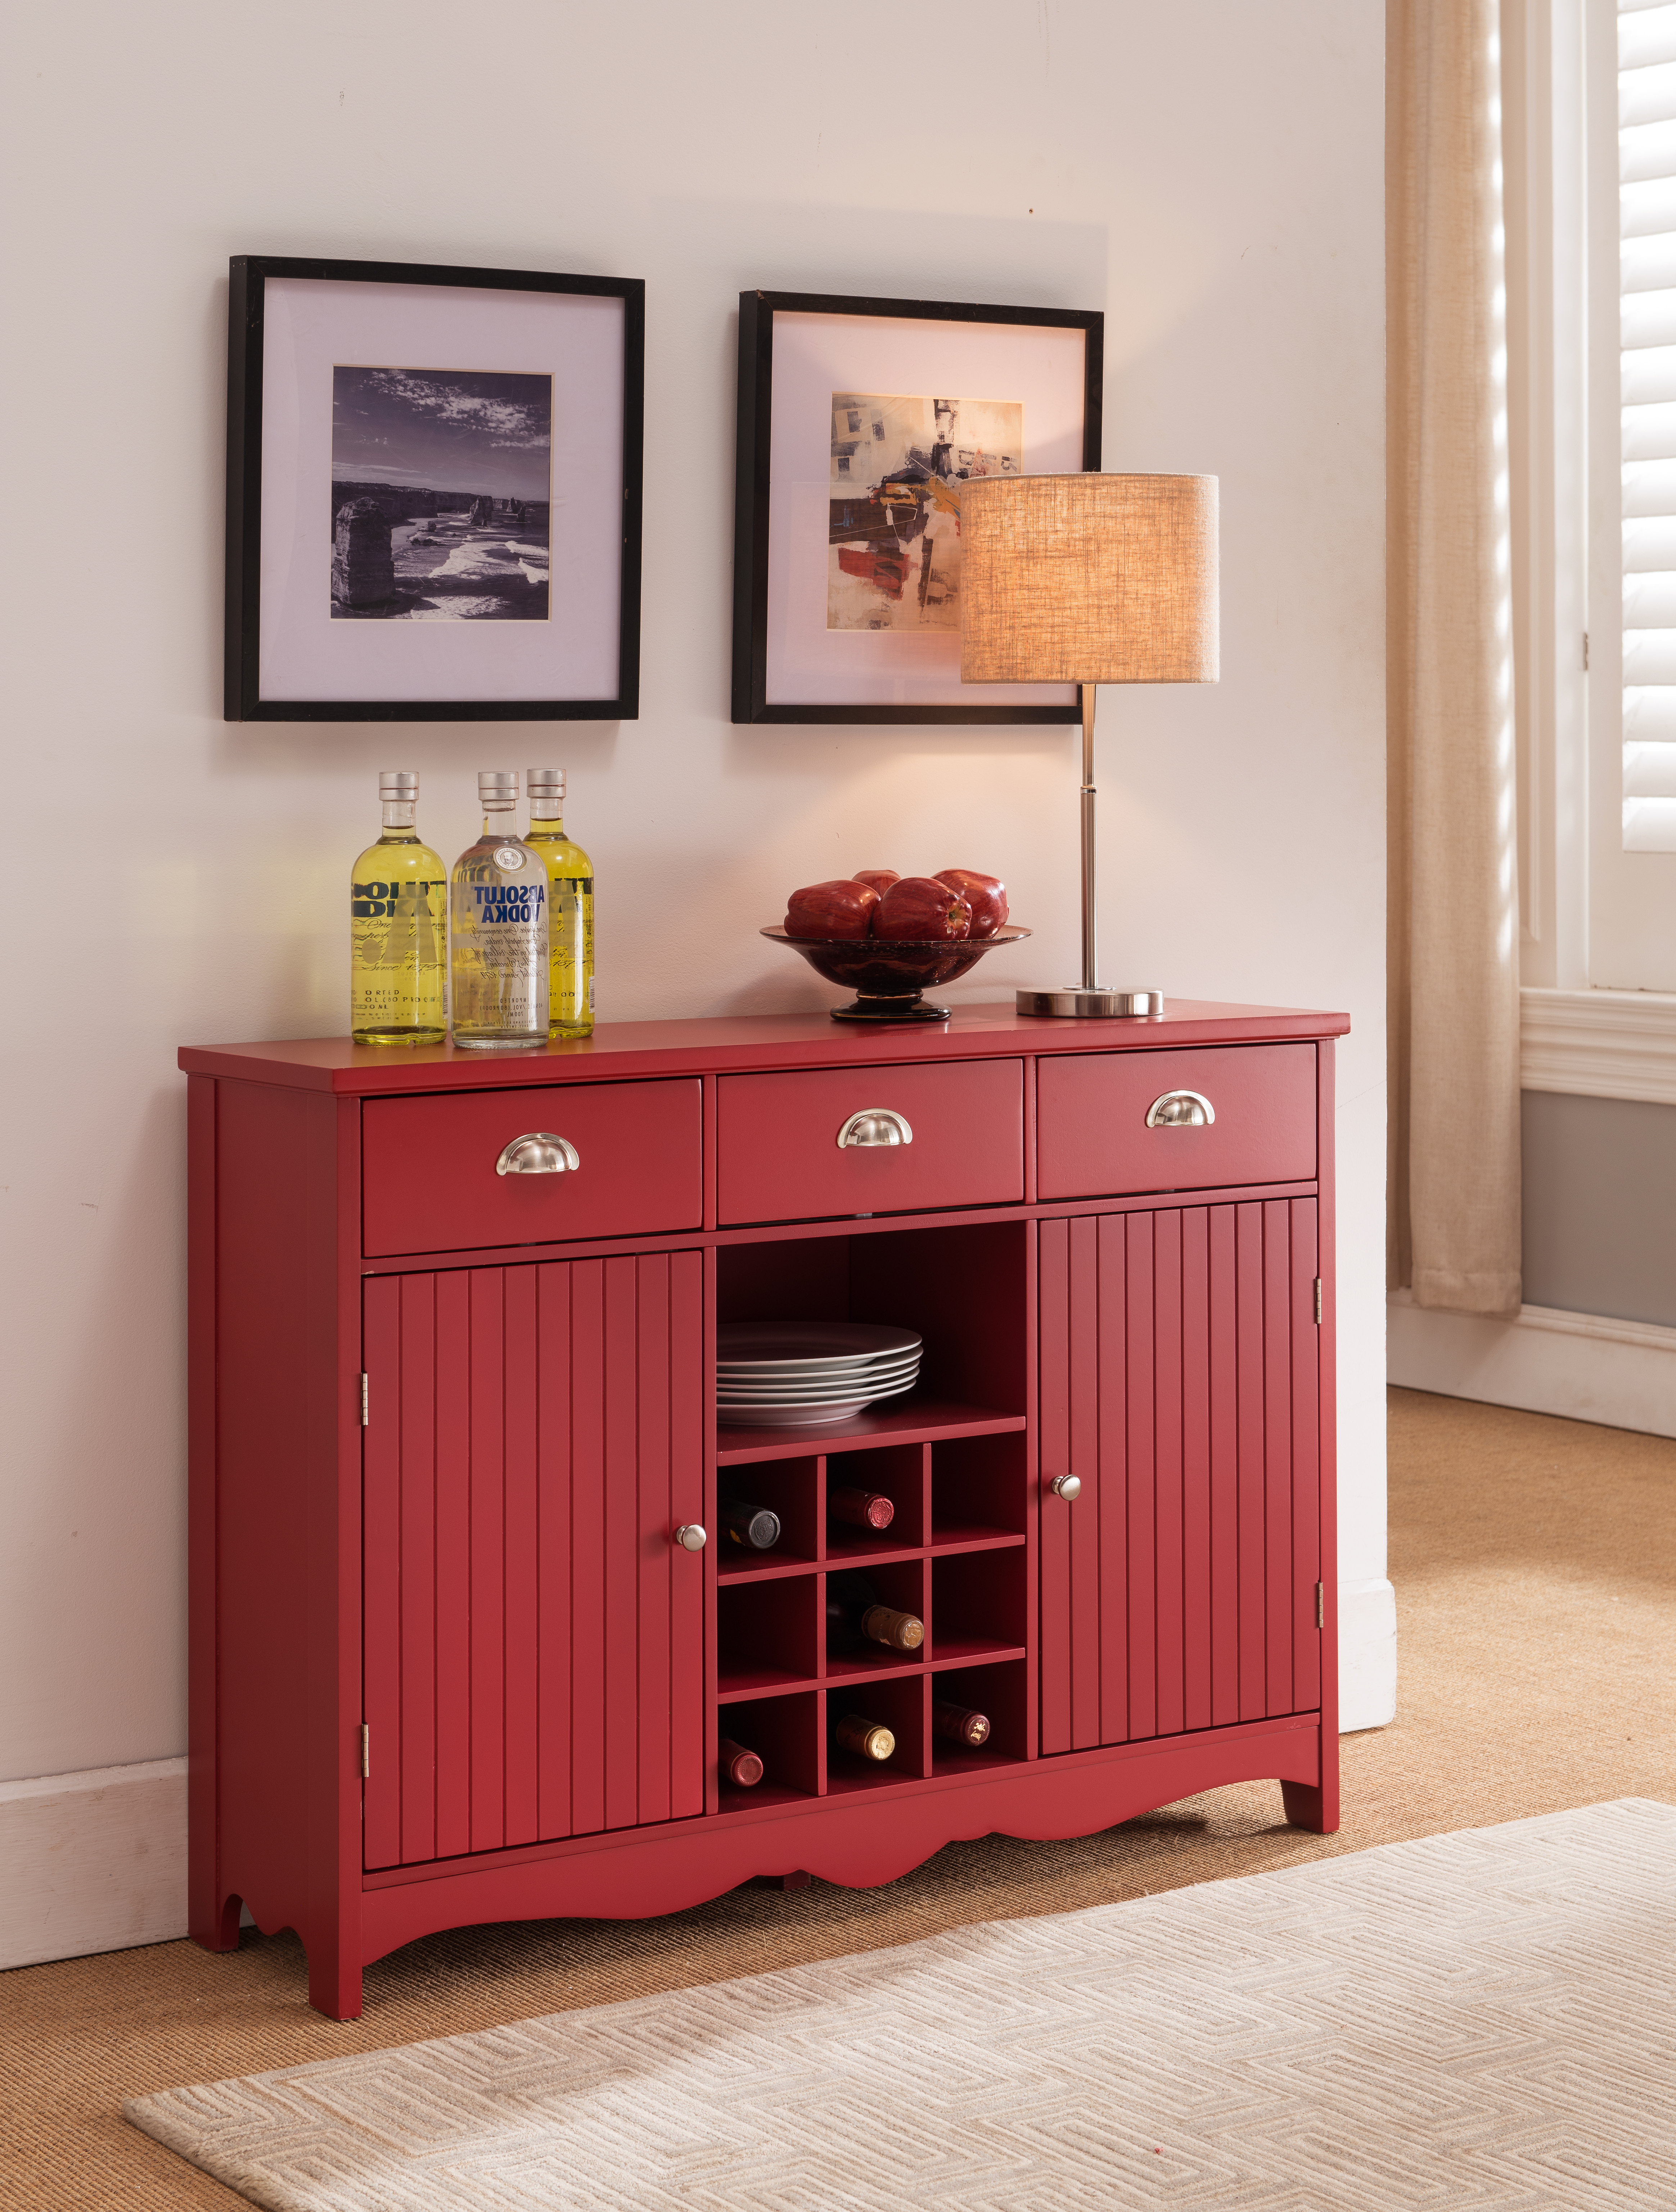 Picture of: Pila Cwr89 Pilaster Designs Wood Wine Rack Console Sideboard Table With Stora For Sale Online Ebay